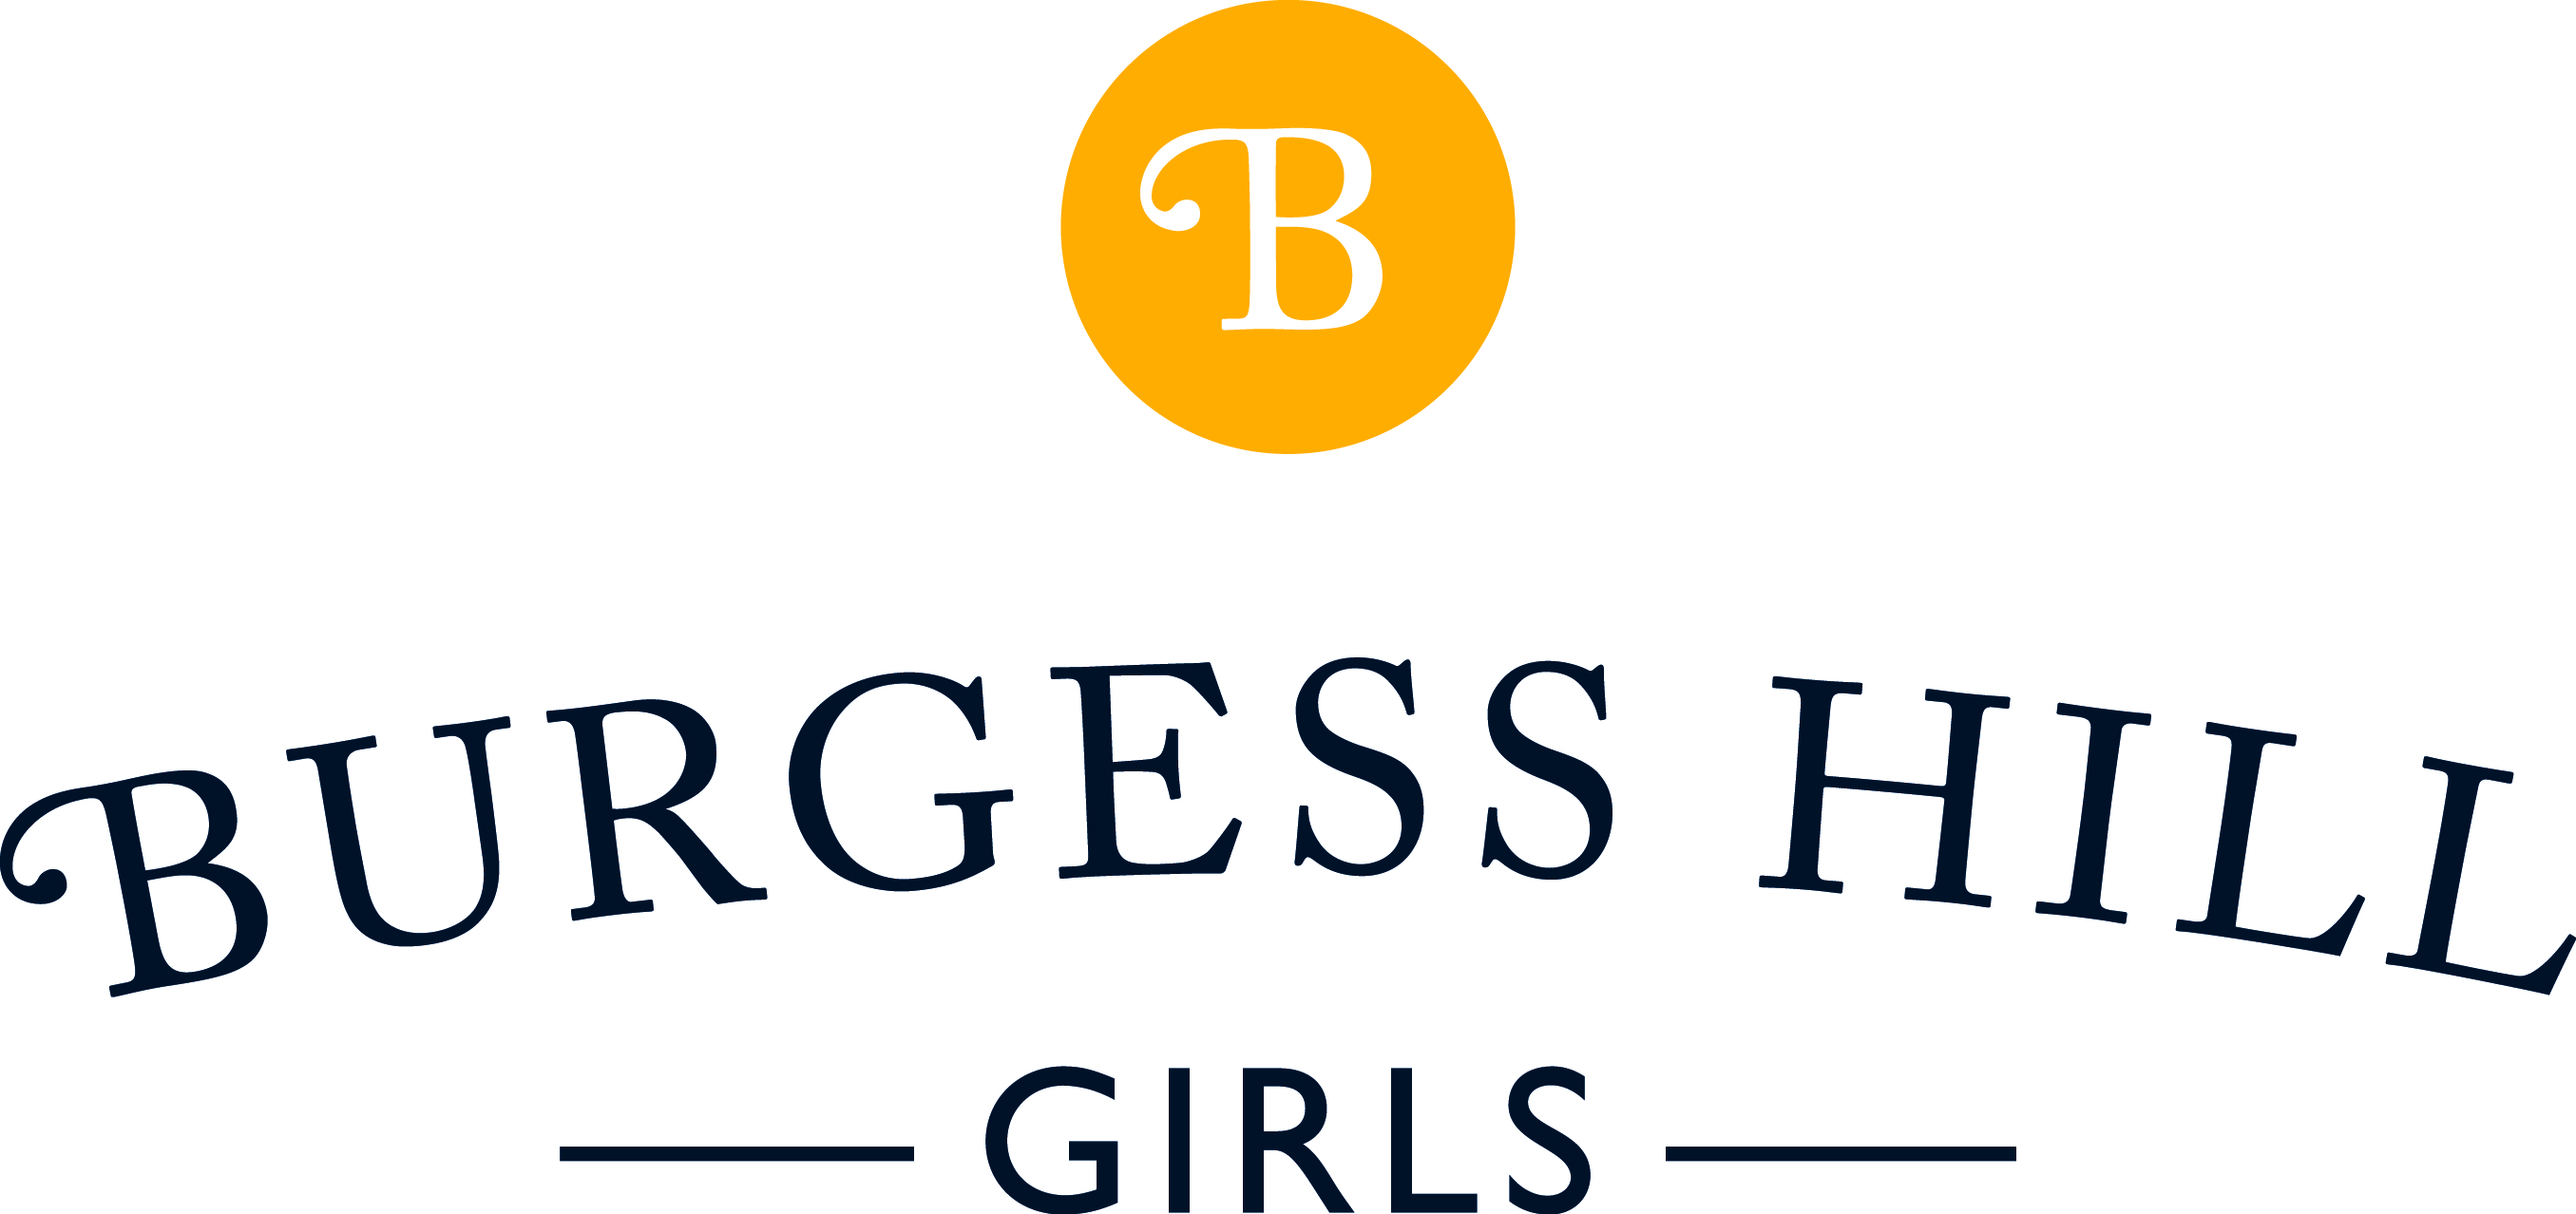 Dating burgess hill